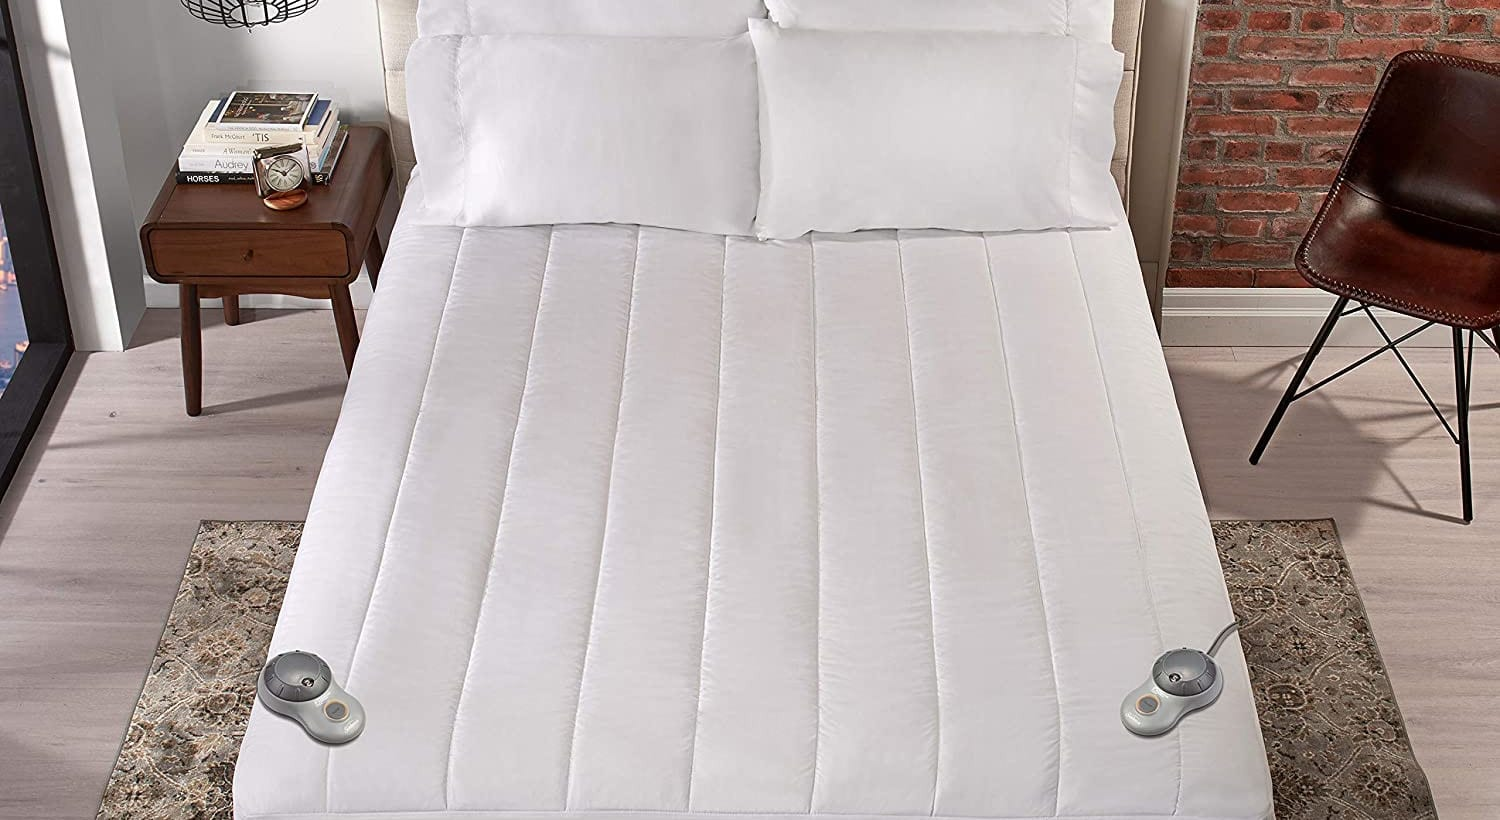 heated mattress pads for staying warm